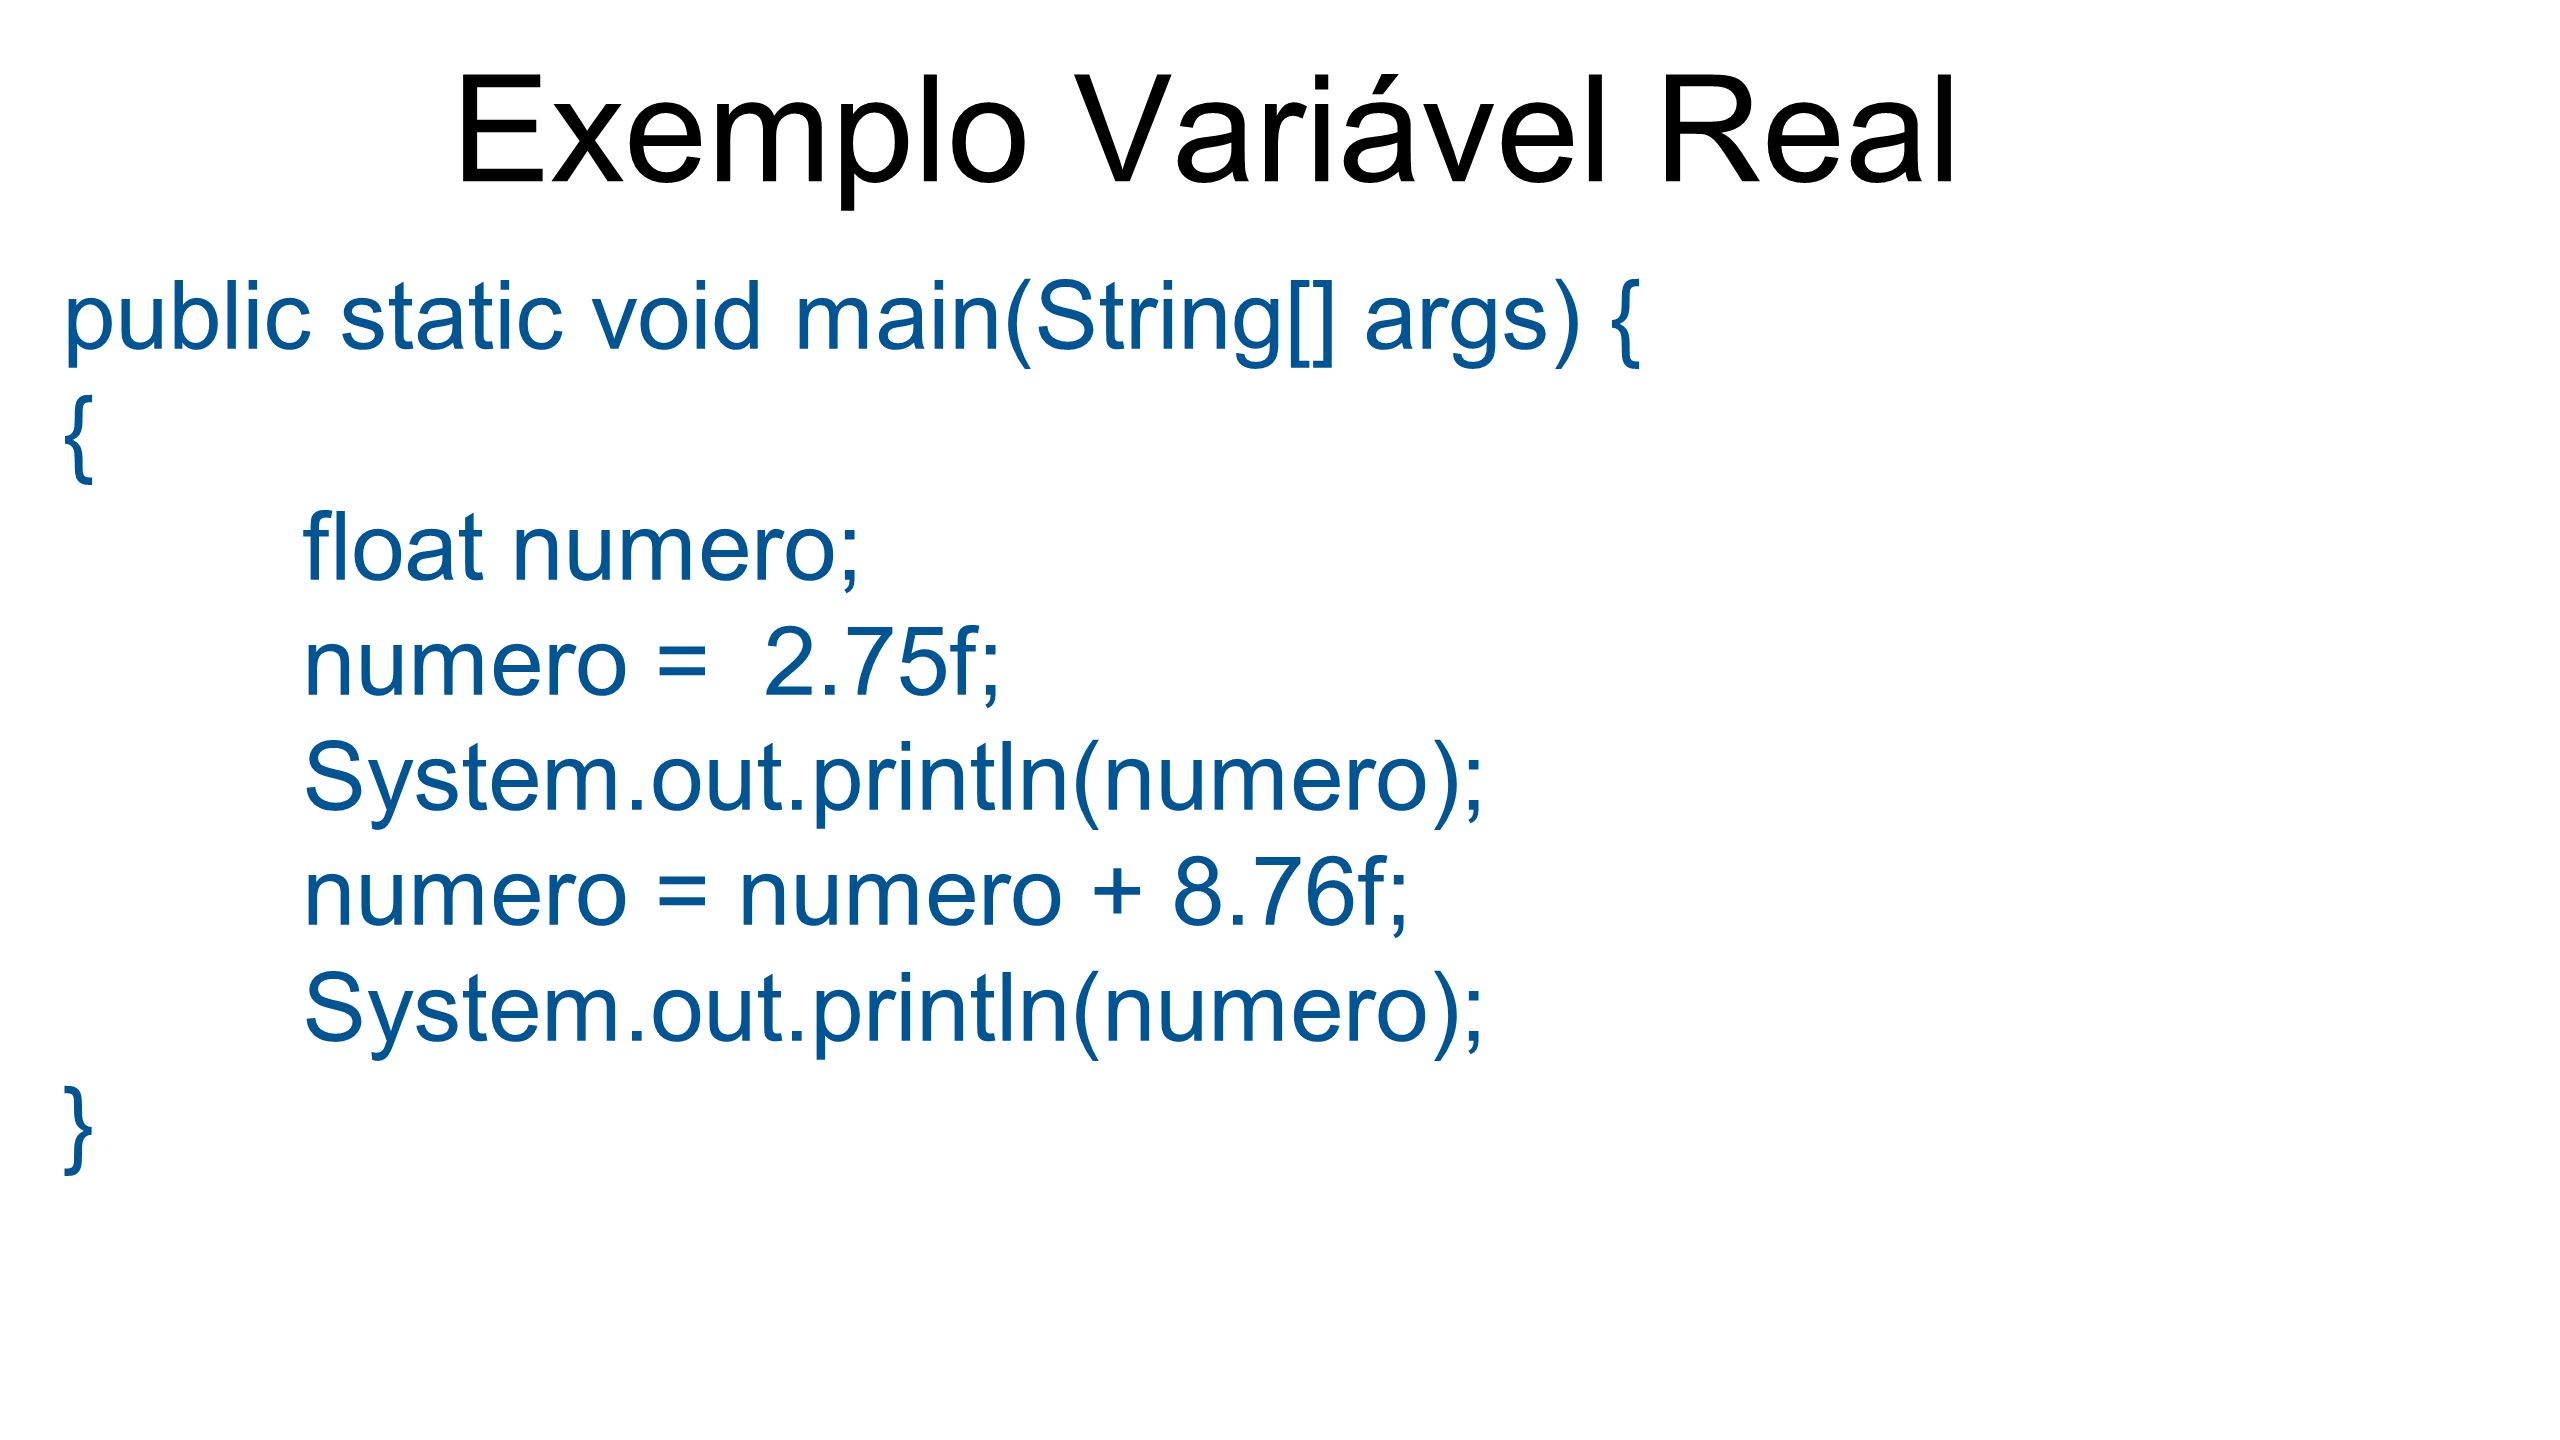 Exemplo Variável Real public static void main(String[] args) { { float numero; numero = 2.75f; System.out.println(numero); numero = numero + 8.76f; Sy